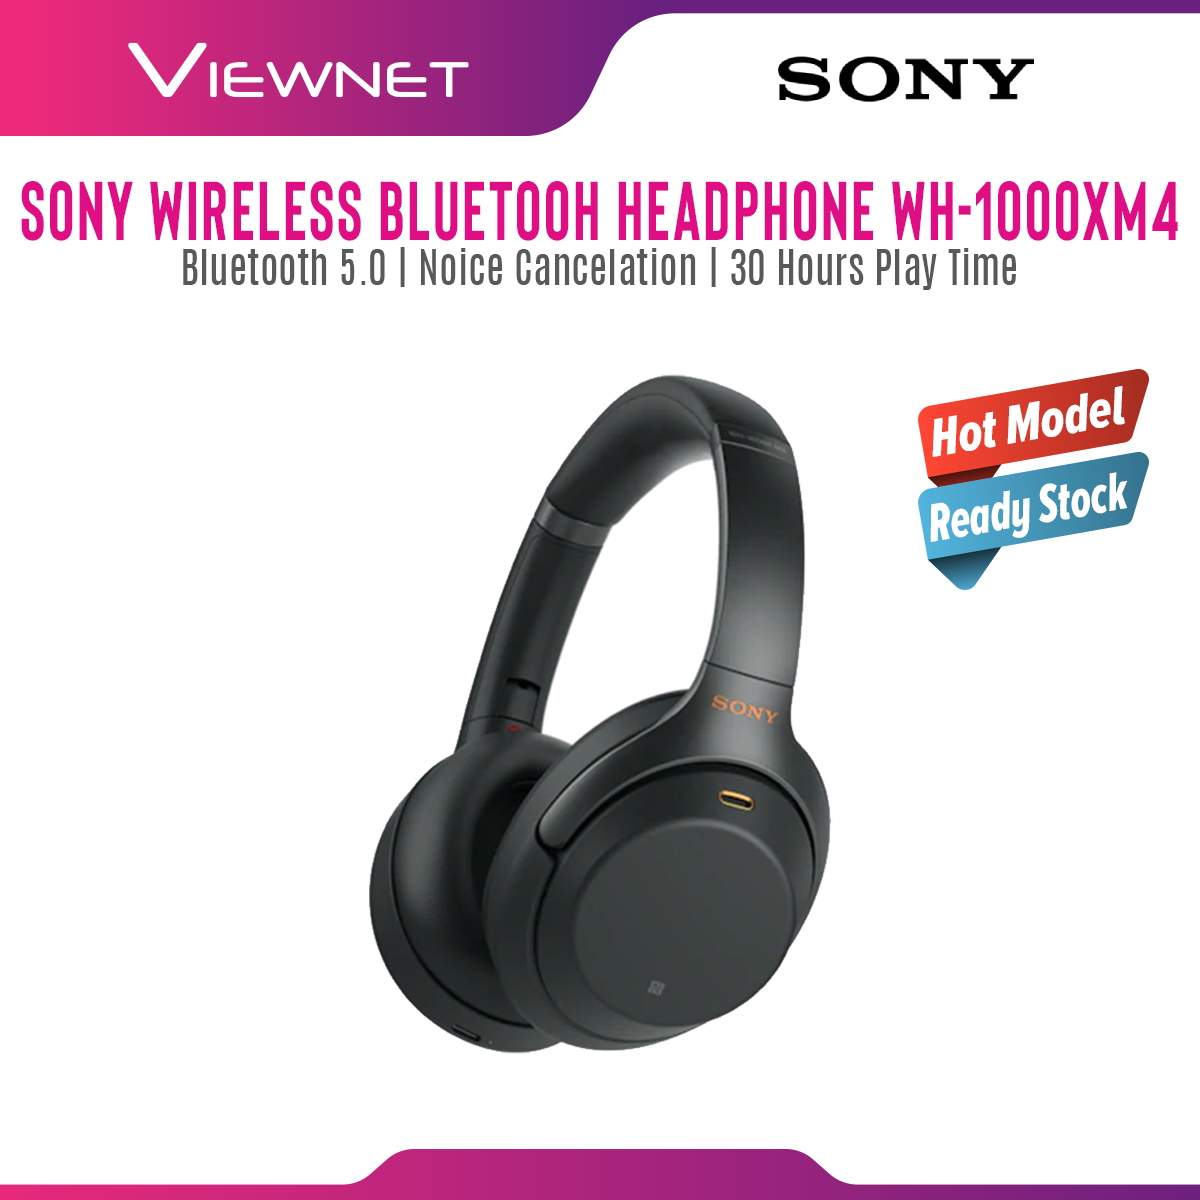 Sony Wireless Headphones WH-1000XM4 / WH1000XM4 / XM4 Noise Cancelling Wearing Detection Touch Control Up to 30 Hours Battery Voice Assistant Compatible Local Manufacturer Warranty